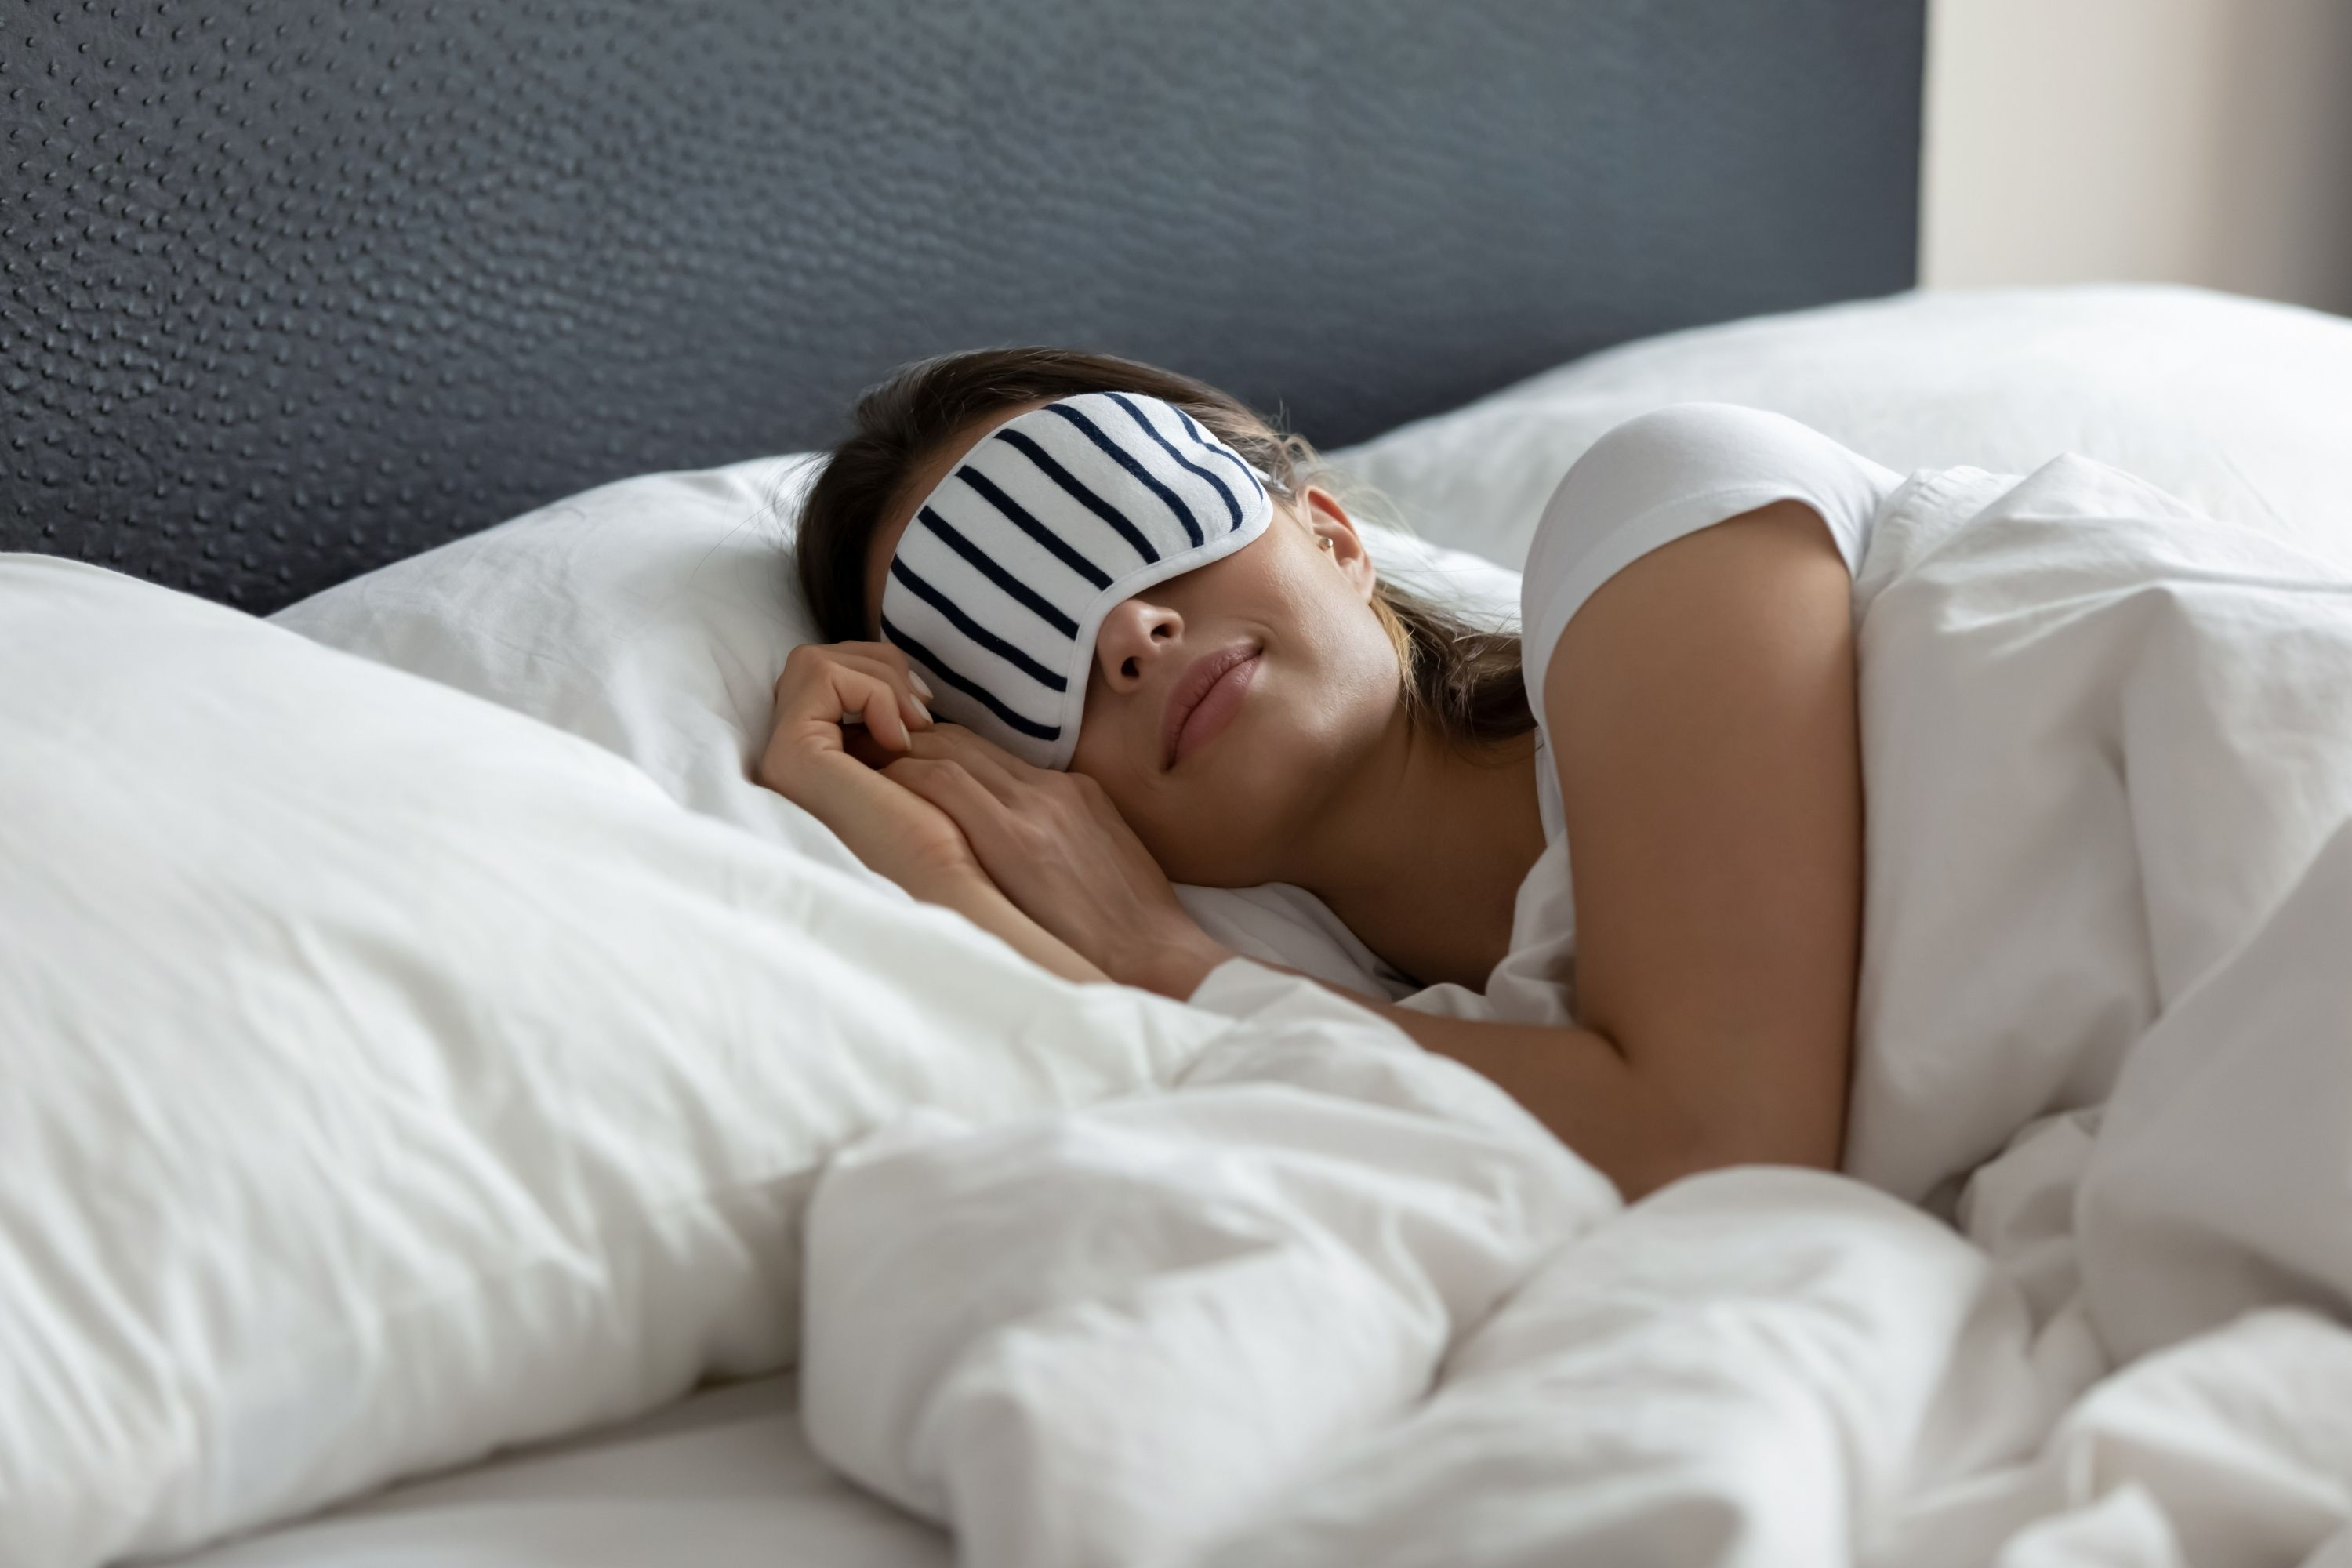 What happens to our health if we don't get enough sleep all the time